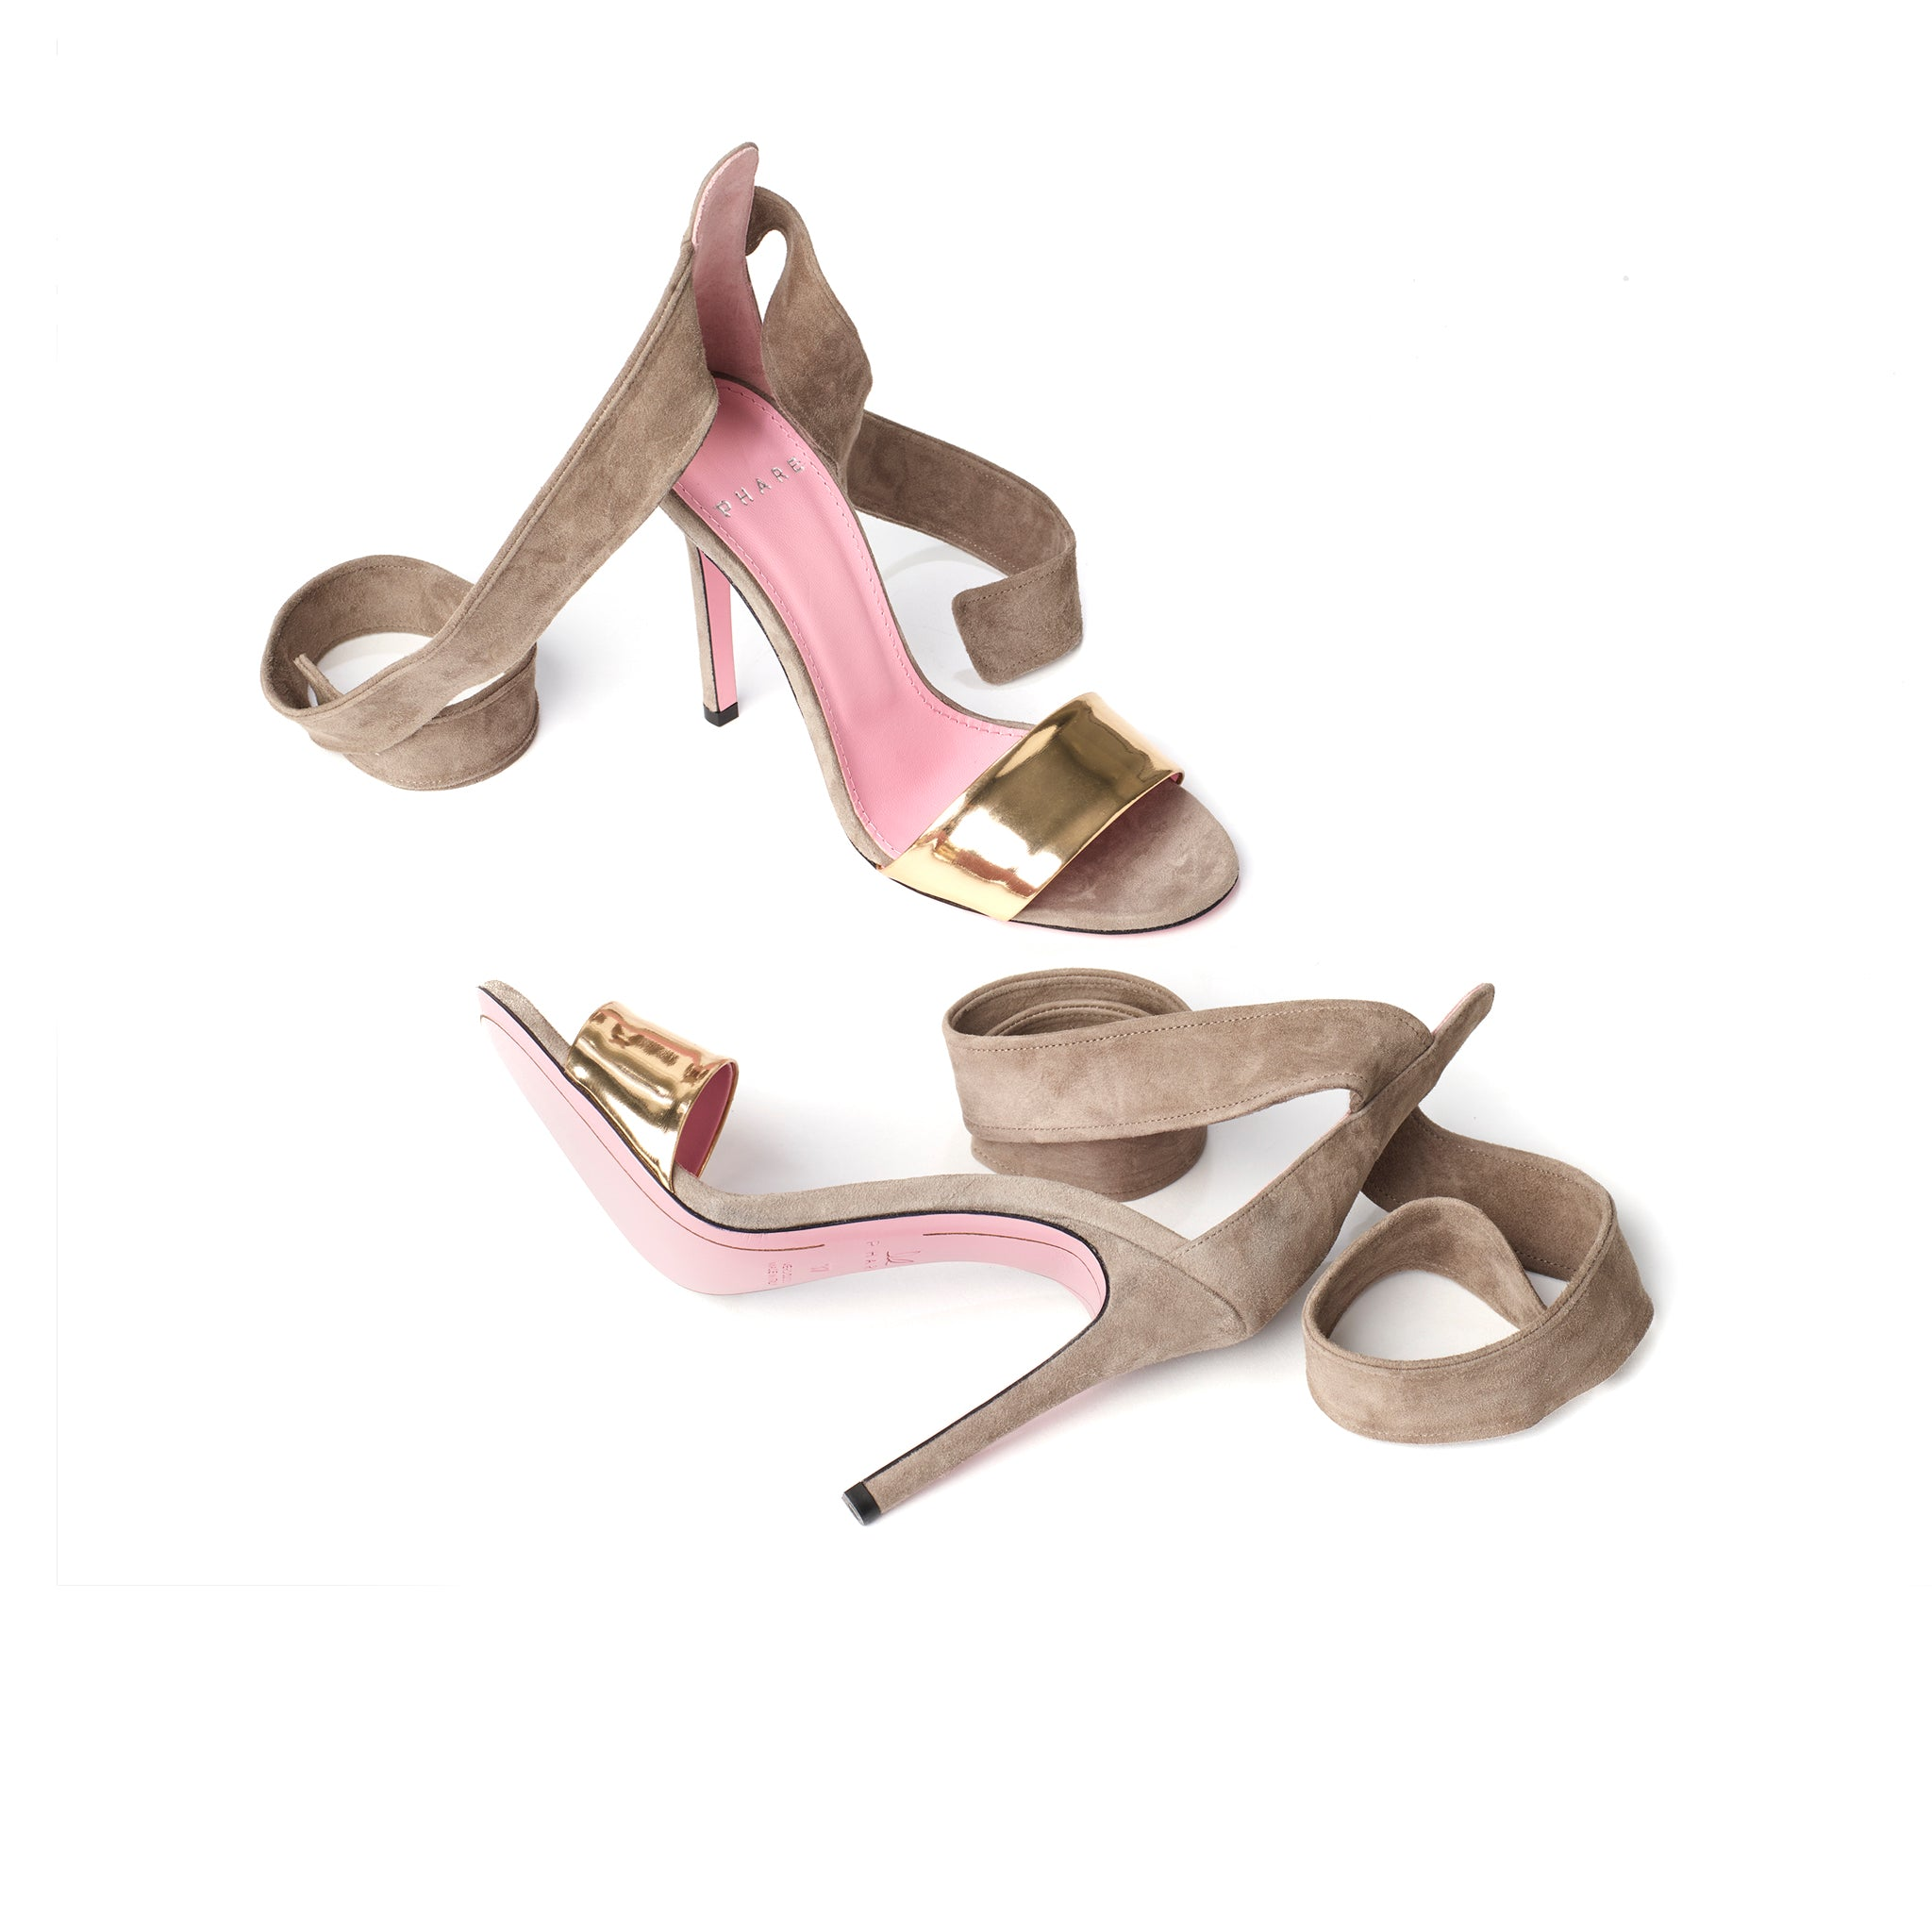 Phare Ankle tie stiletto in taupe suede sole view